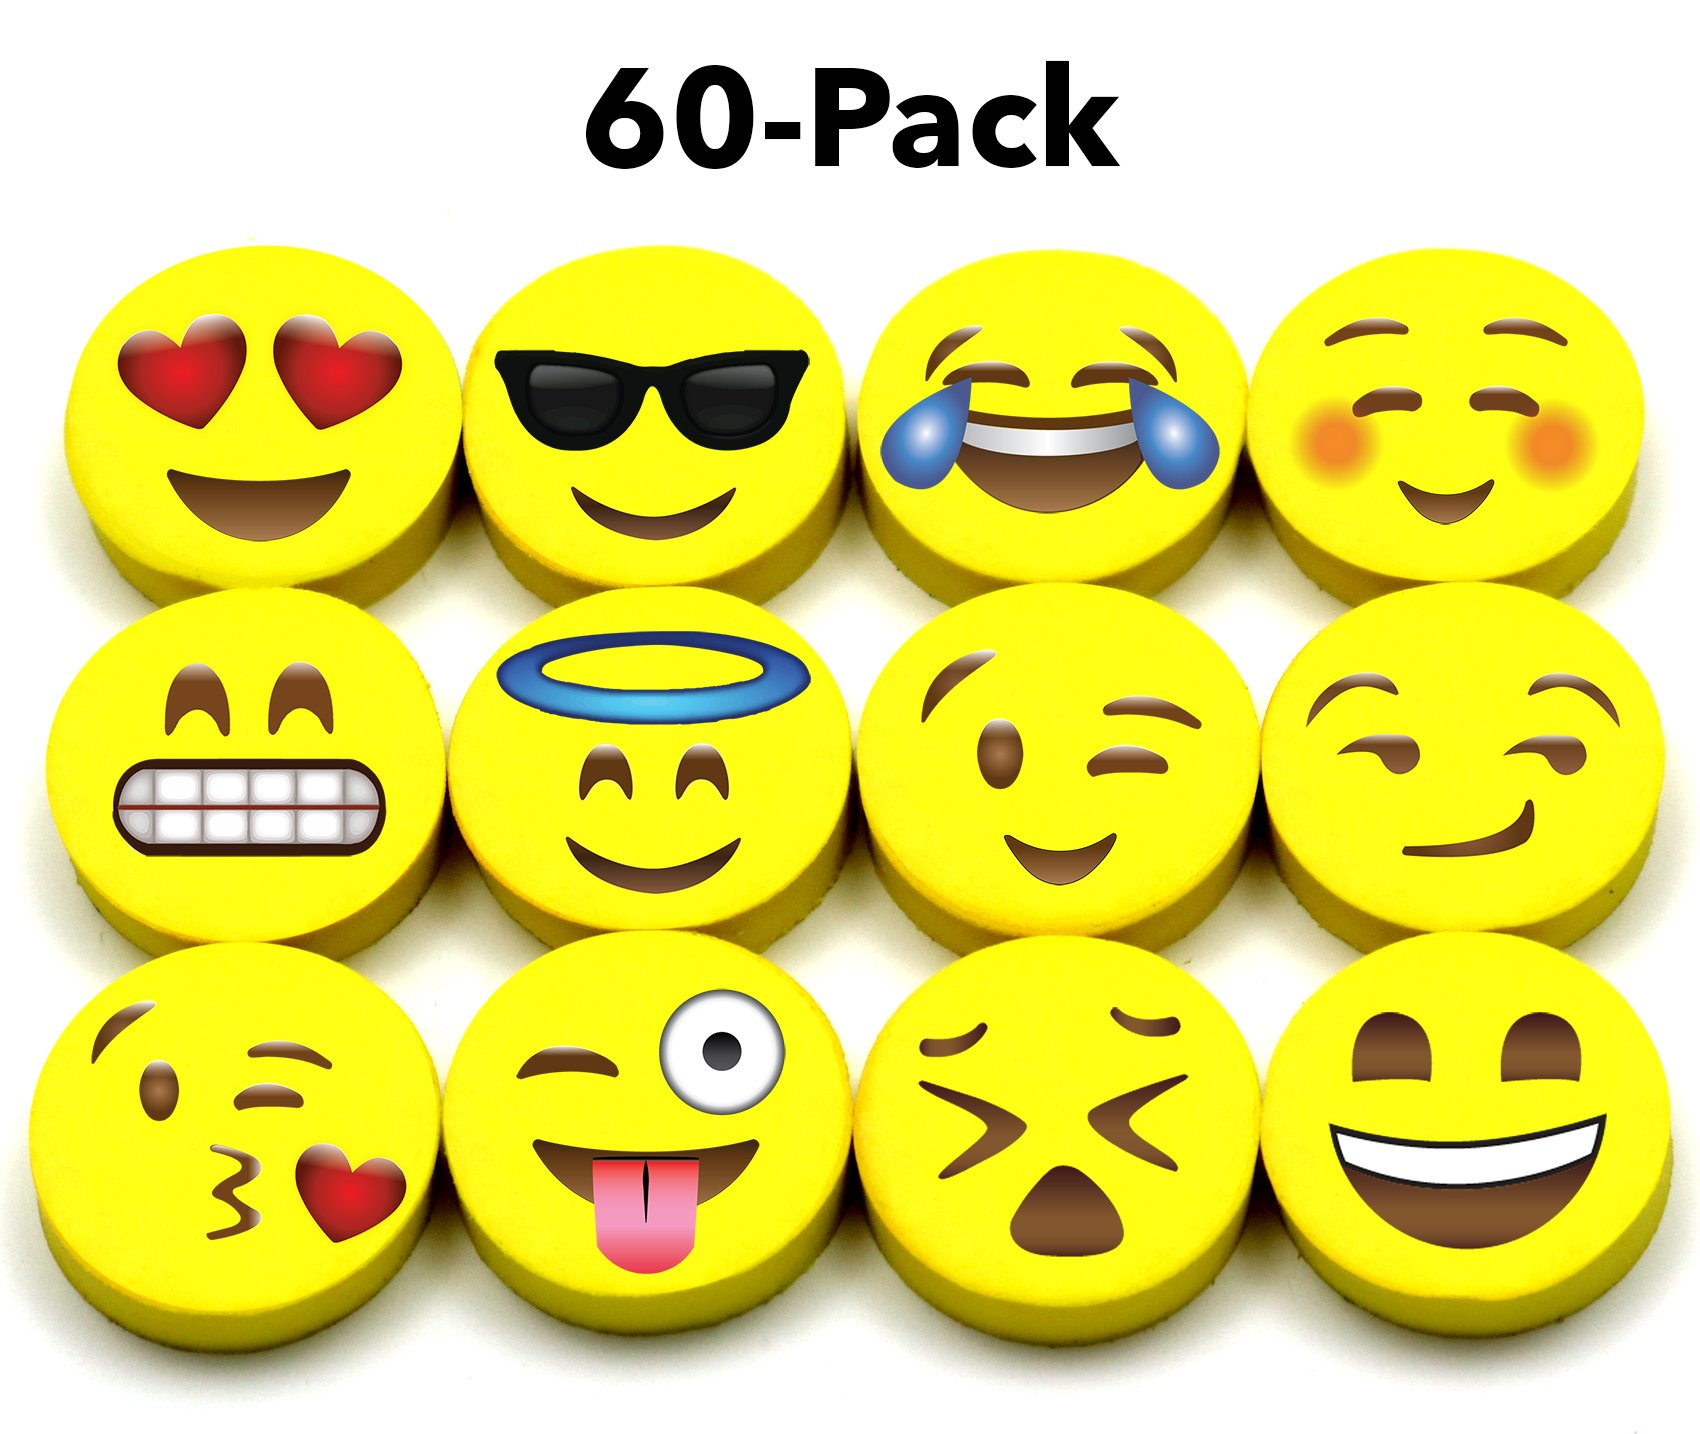 LiveEco Emoji Erasers for Kids, 60 Emoji Pencil Eraser Bulk Pack, Great as Birthday Gifts, Classroom Rewards, Party Favors, Student Incentives, School Supplies, Pair with Fun Pencils by LiveEco (Image #1)